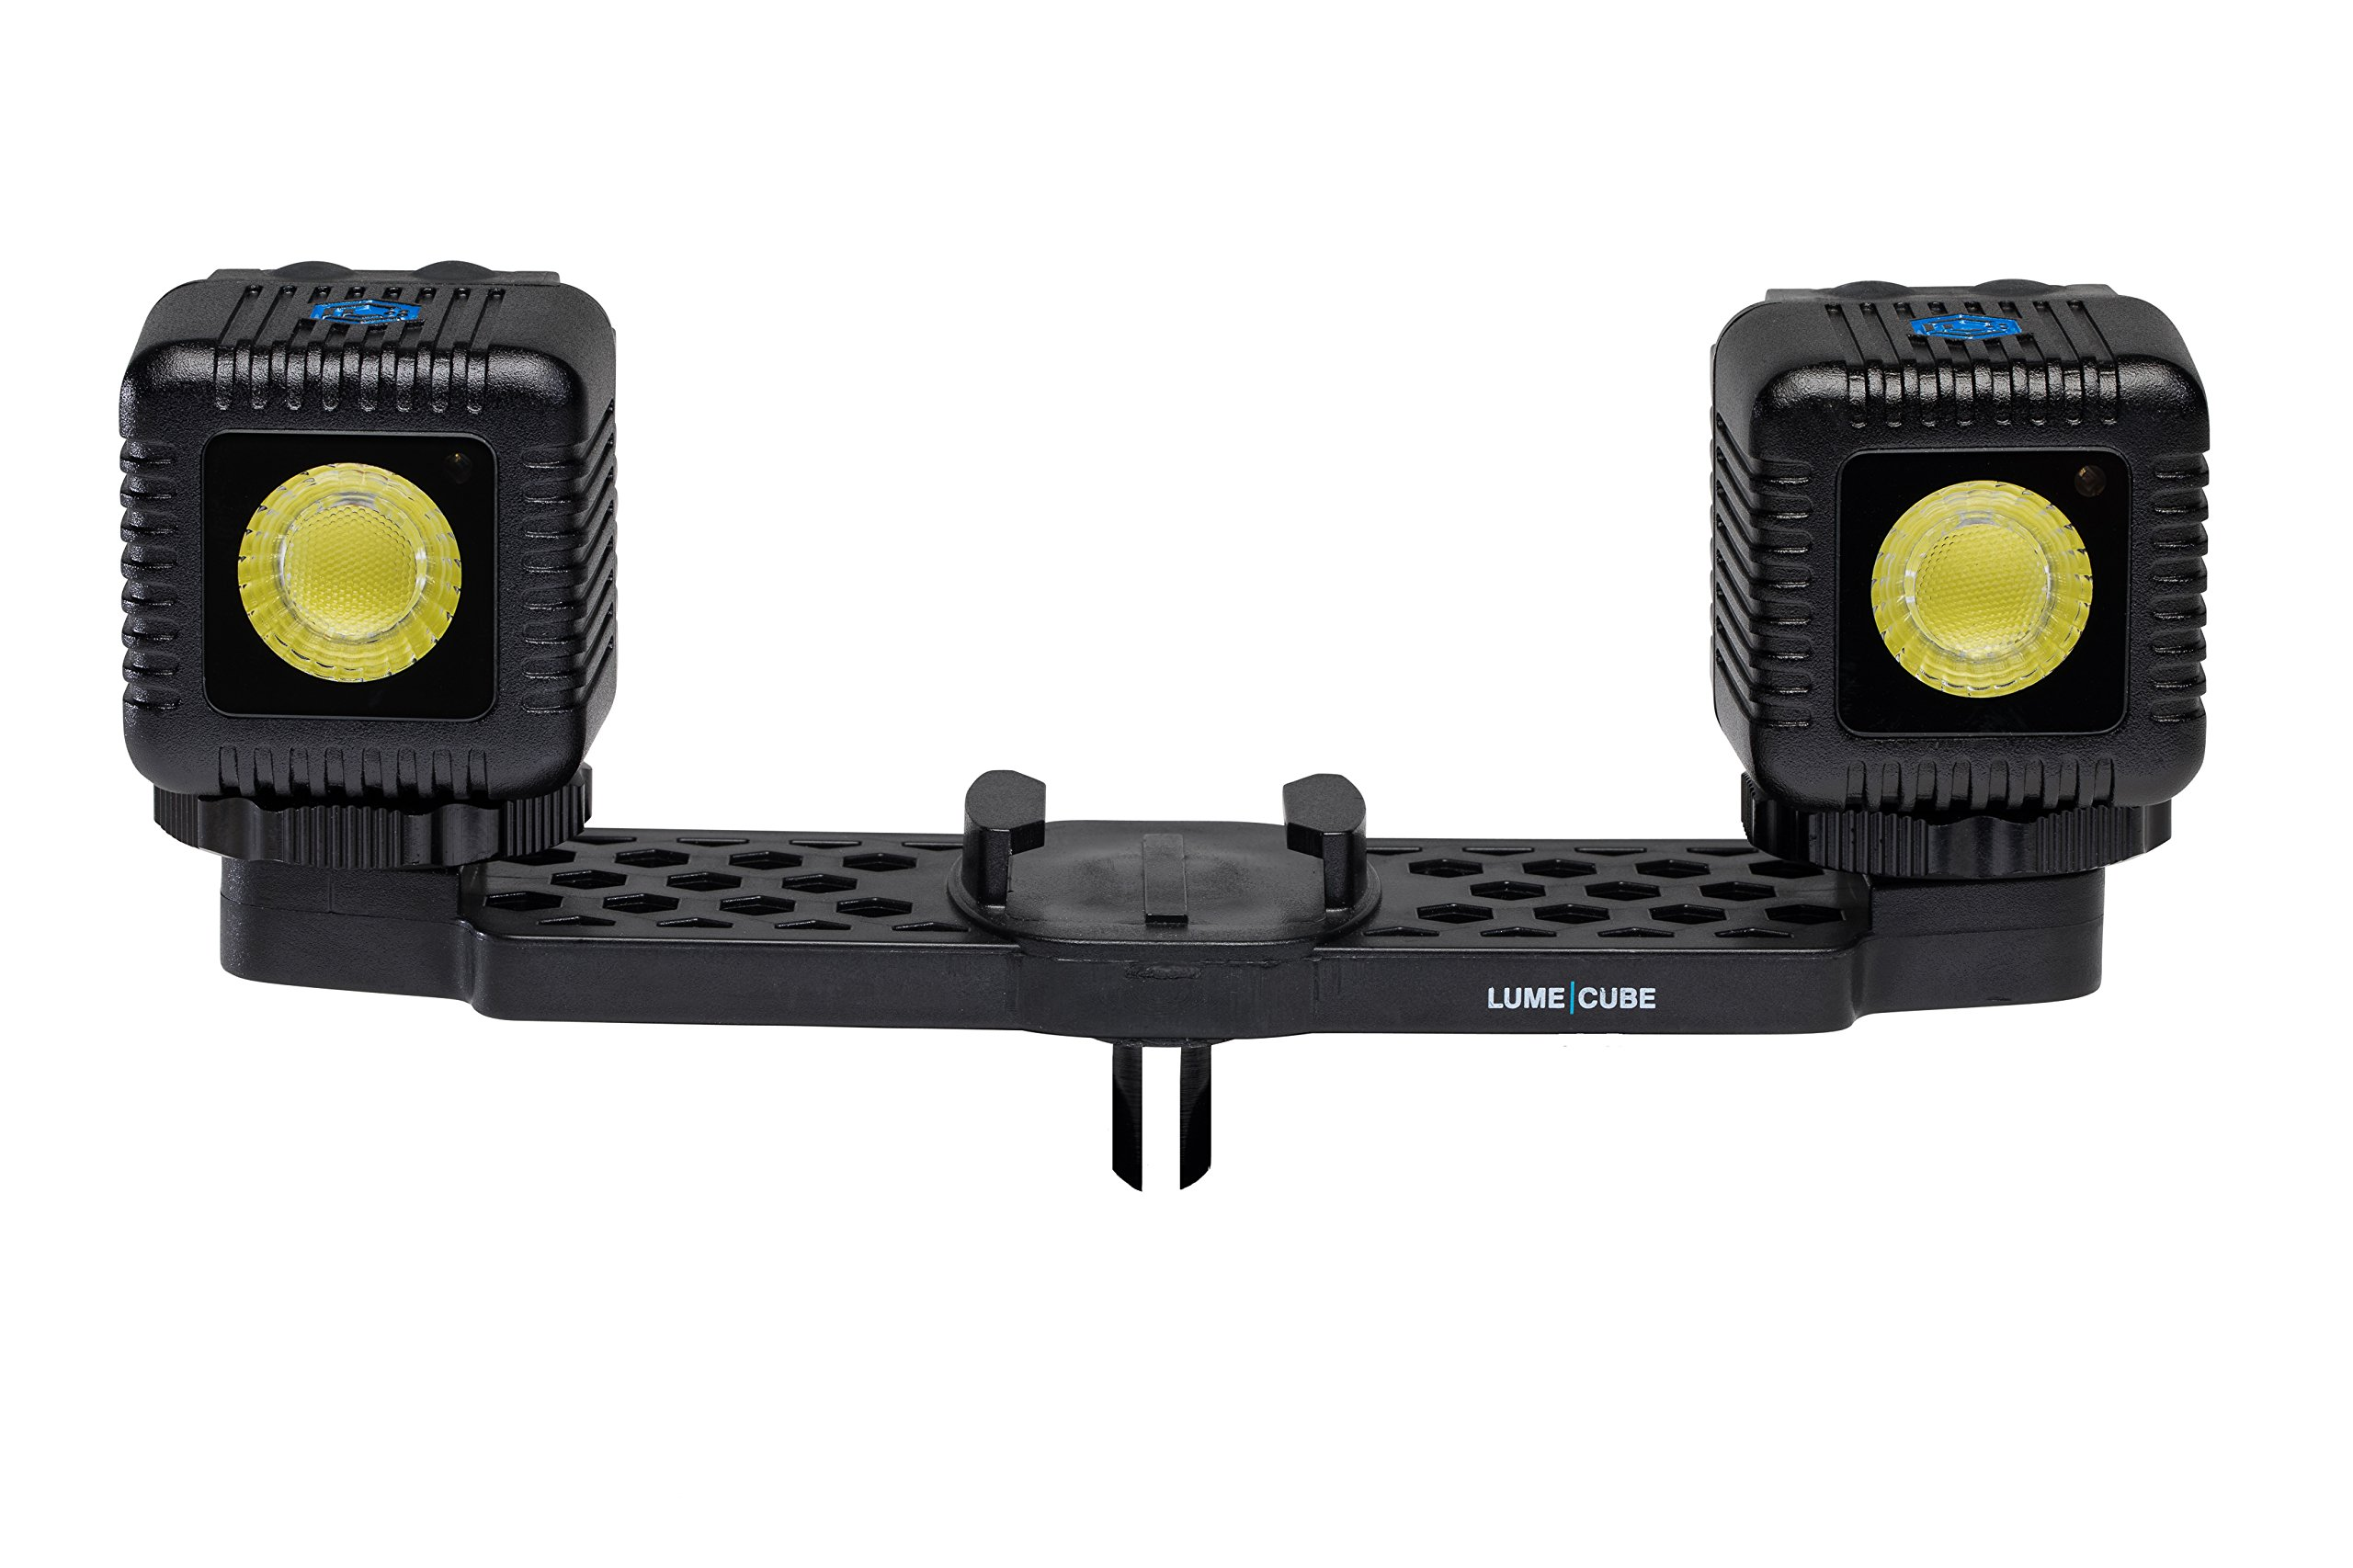 Lume Cube - Mounting Bar for GoPro/Action Cameras (Black - Mounting Bar) by LUME CUBE (Image #3)